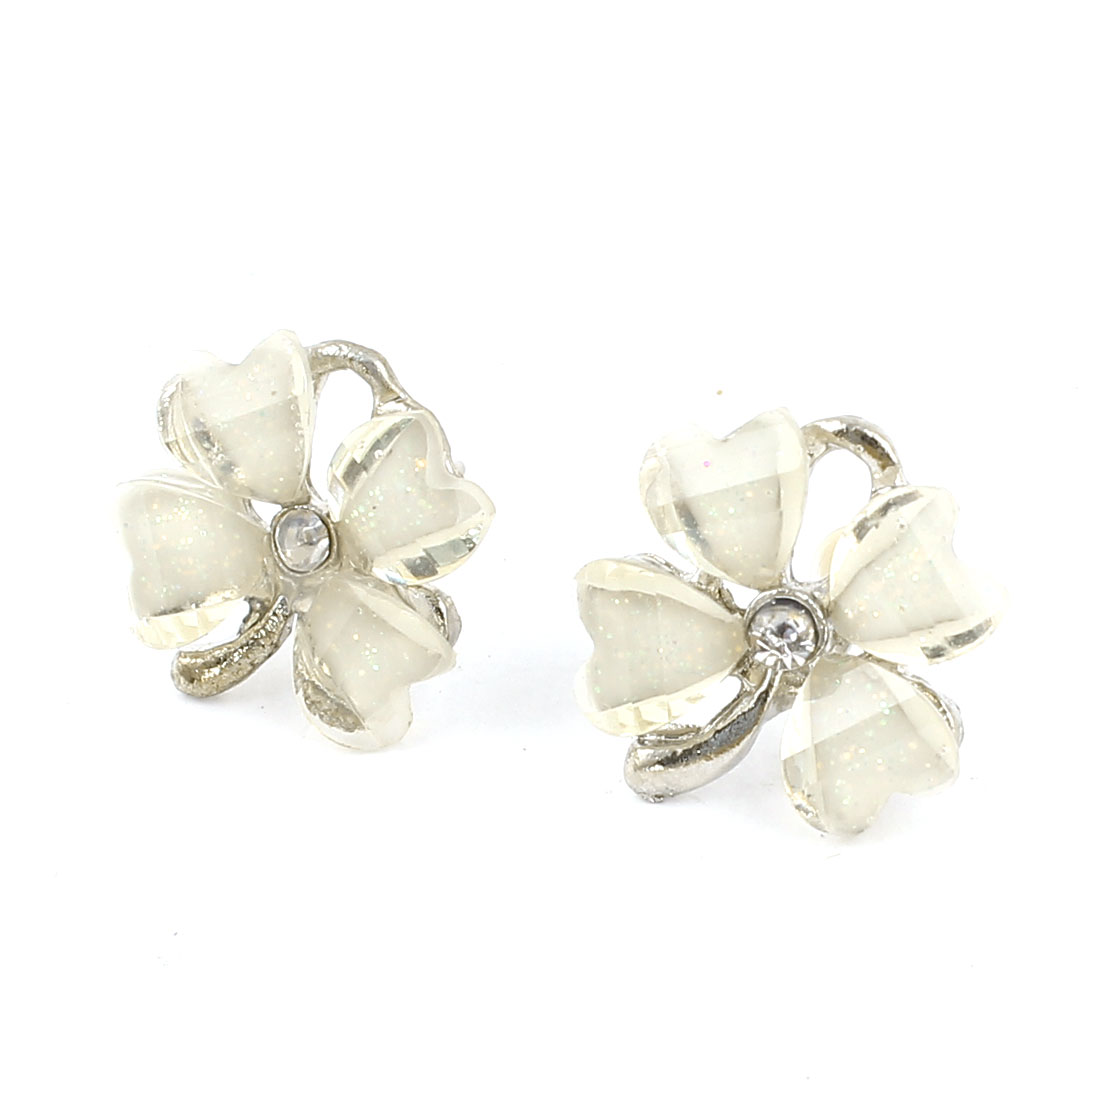 White Plastic Clover Flower Shape Rhinestone Accent Clip Earrings Pair for Women